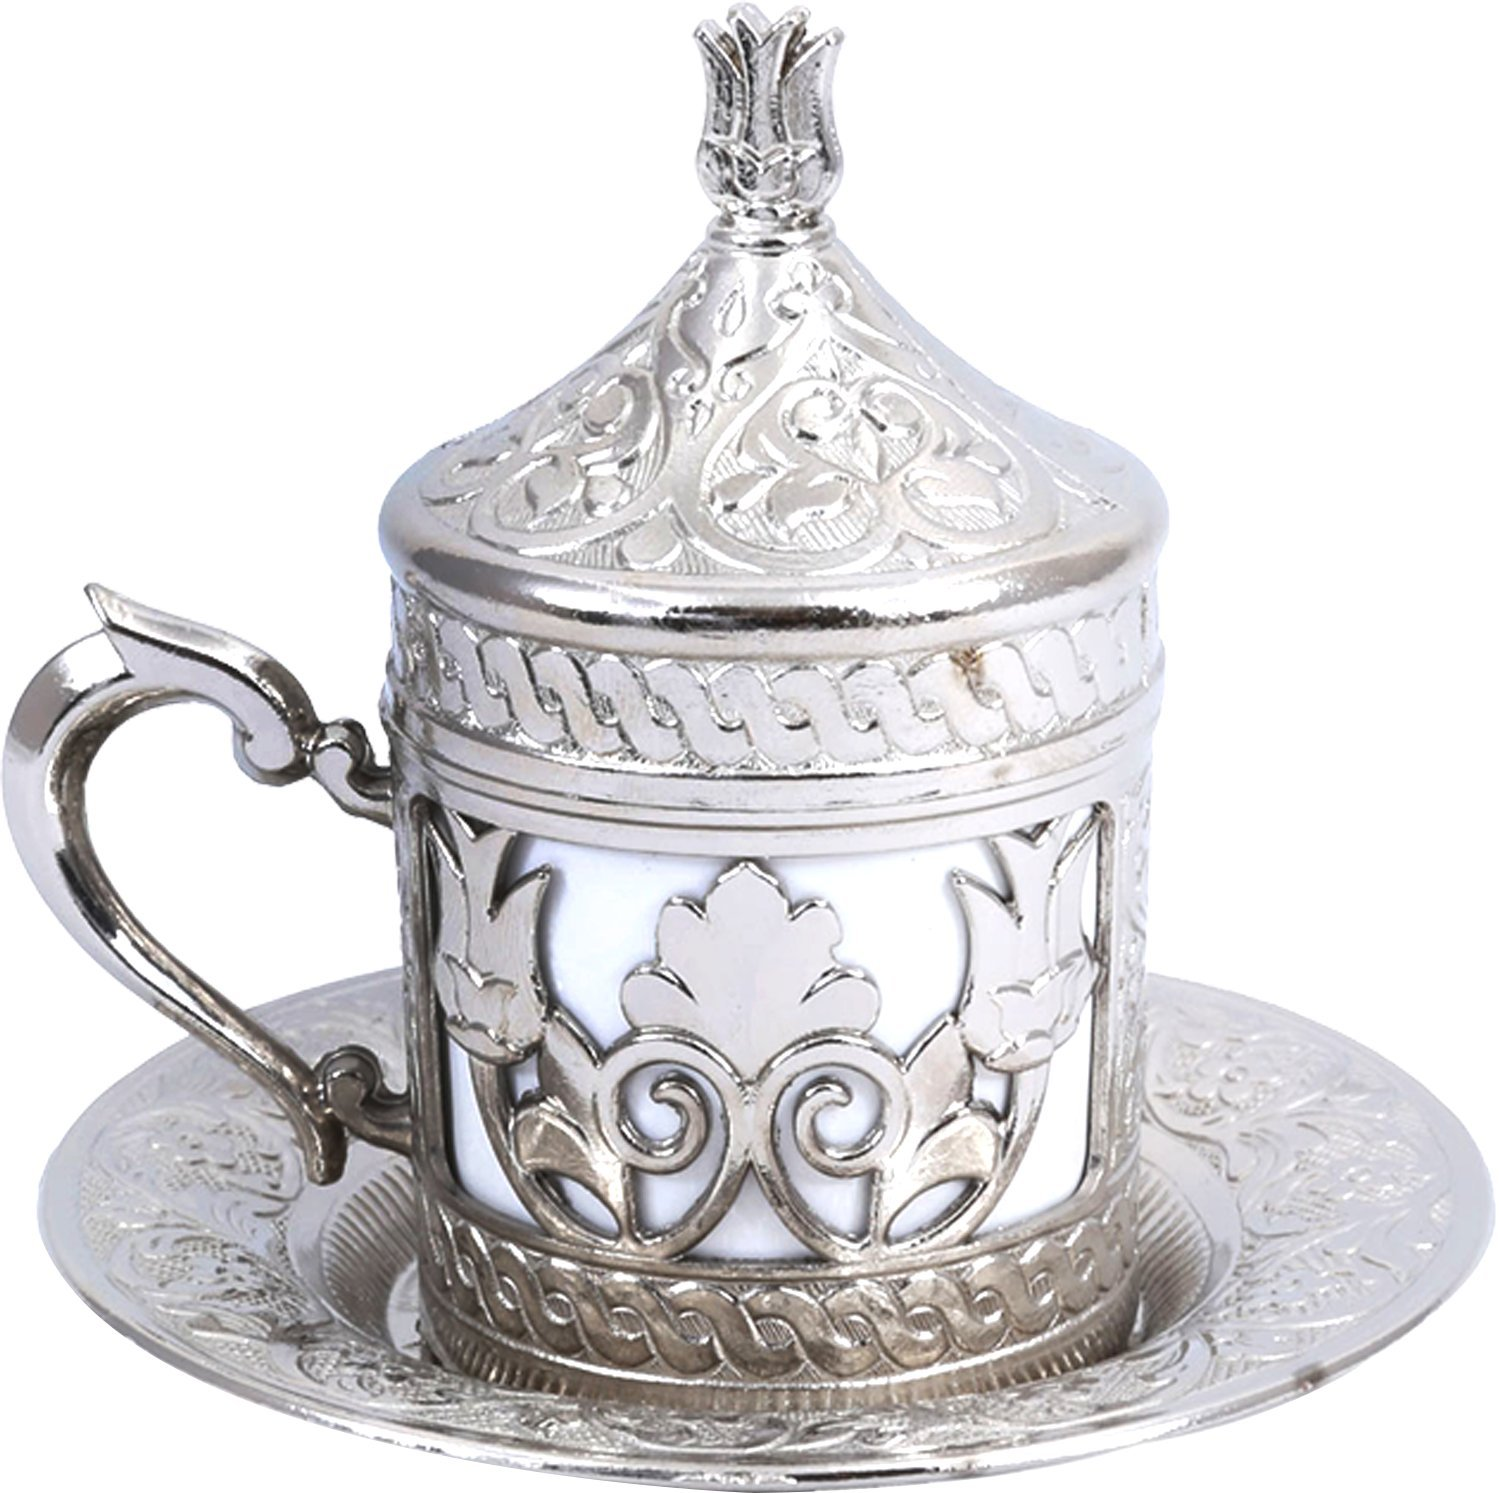 Premium Zamak Construction Handmade Serving Set for 2 Include Cups Espresso and Tea Set Sugar Bowl and Tray Saucers Handcraft Ideas 11-Pieces Turkish Coffee CS2-204